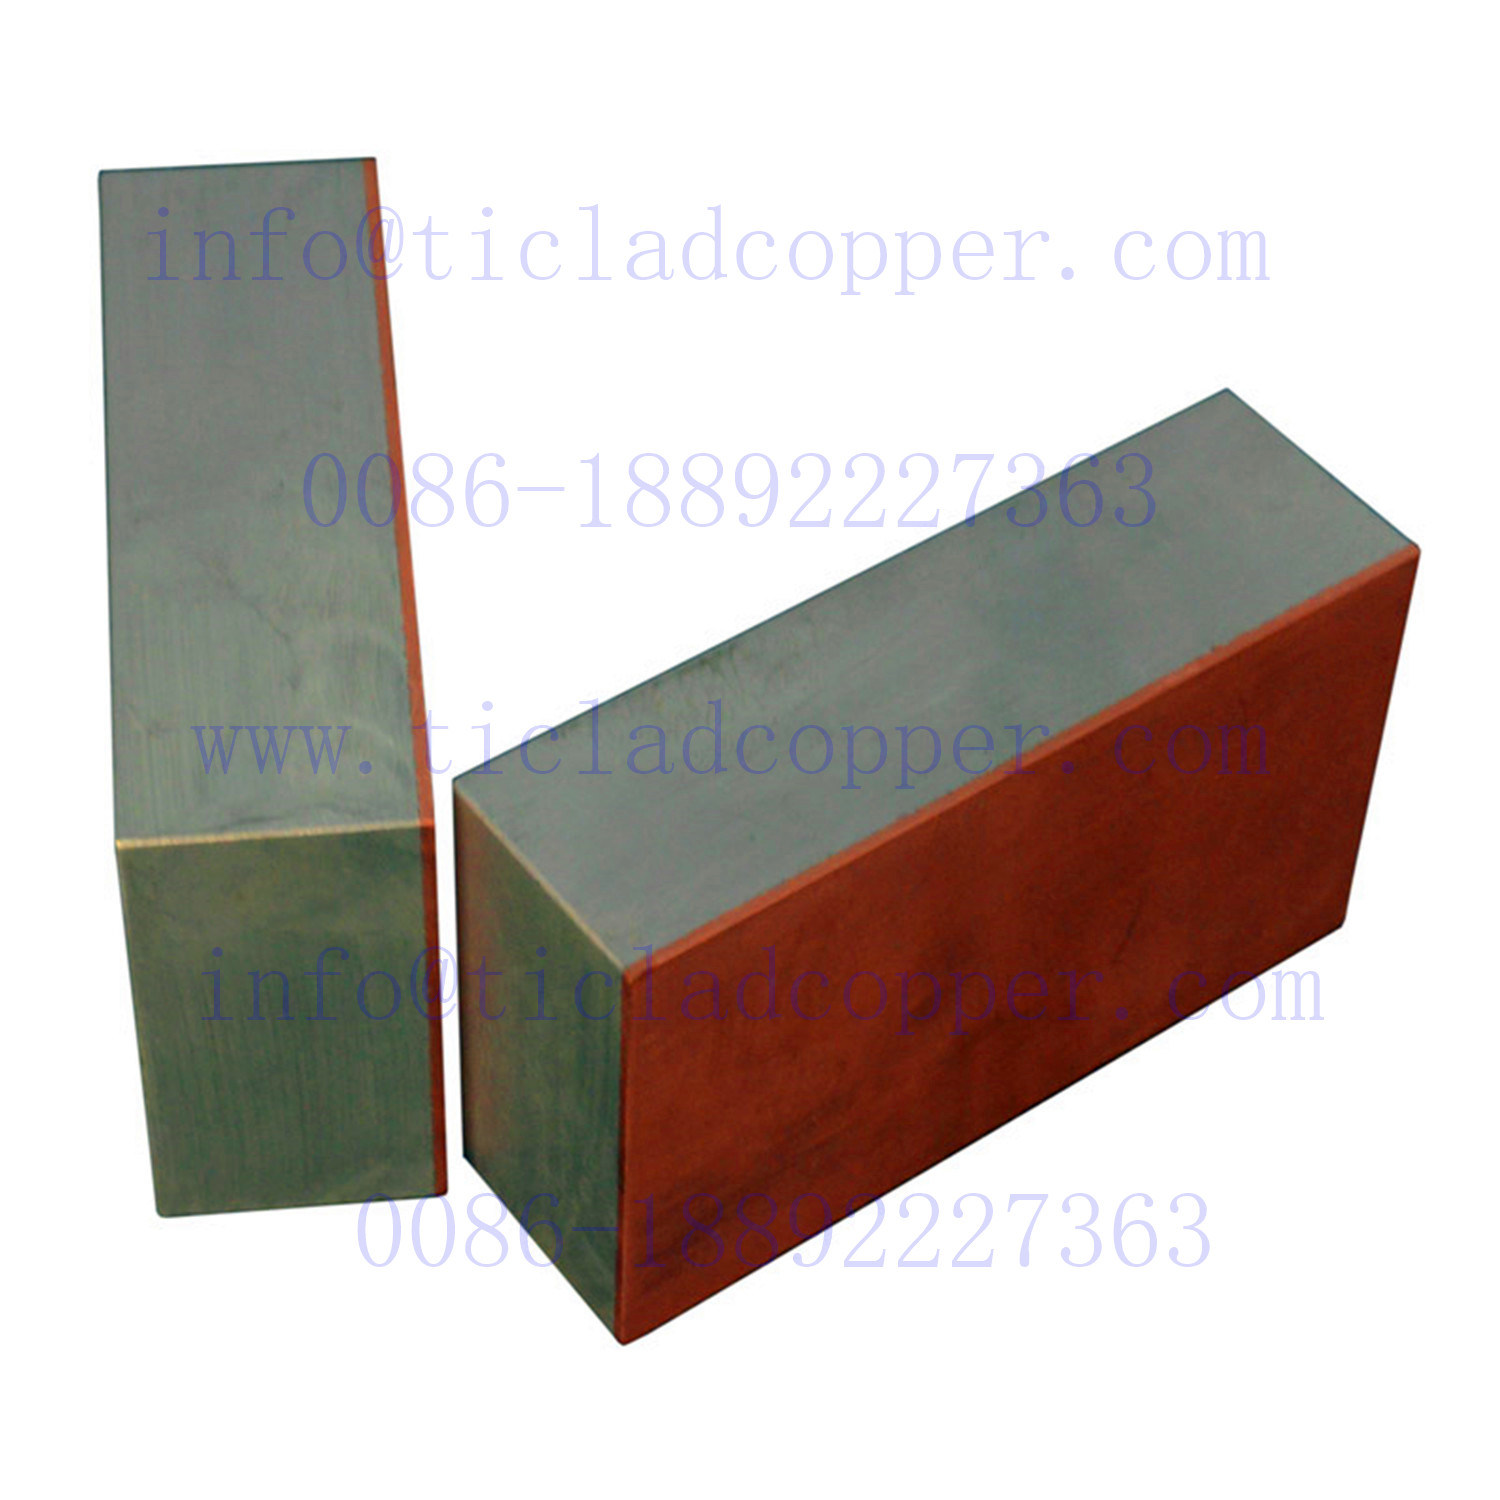 Explosion Bonding Copper Clad Aluminum Sheets for Petrochemical Industry